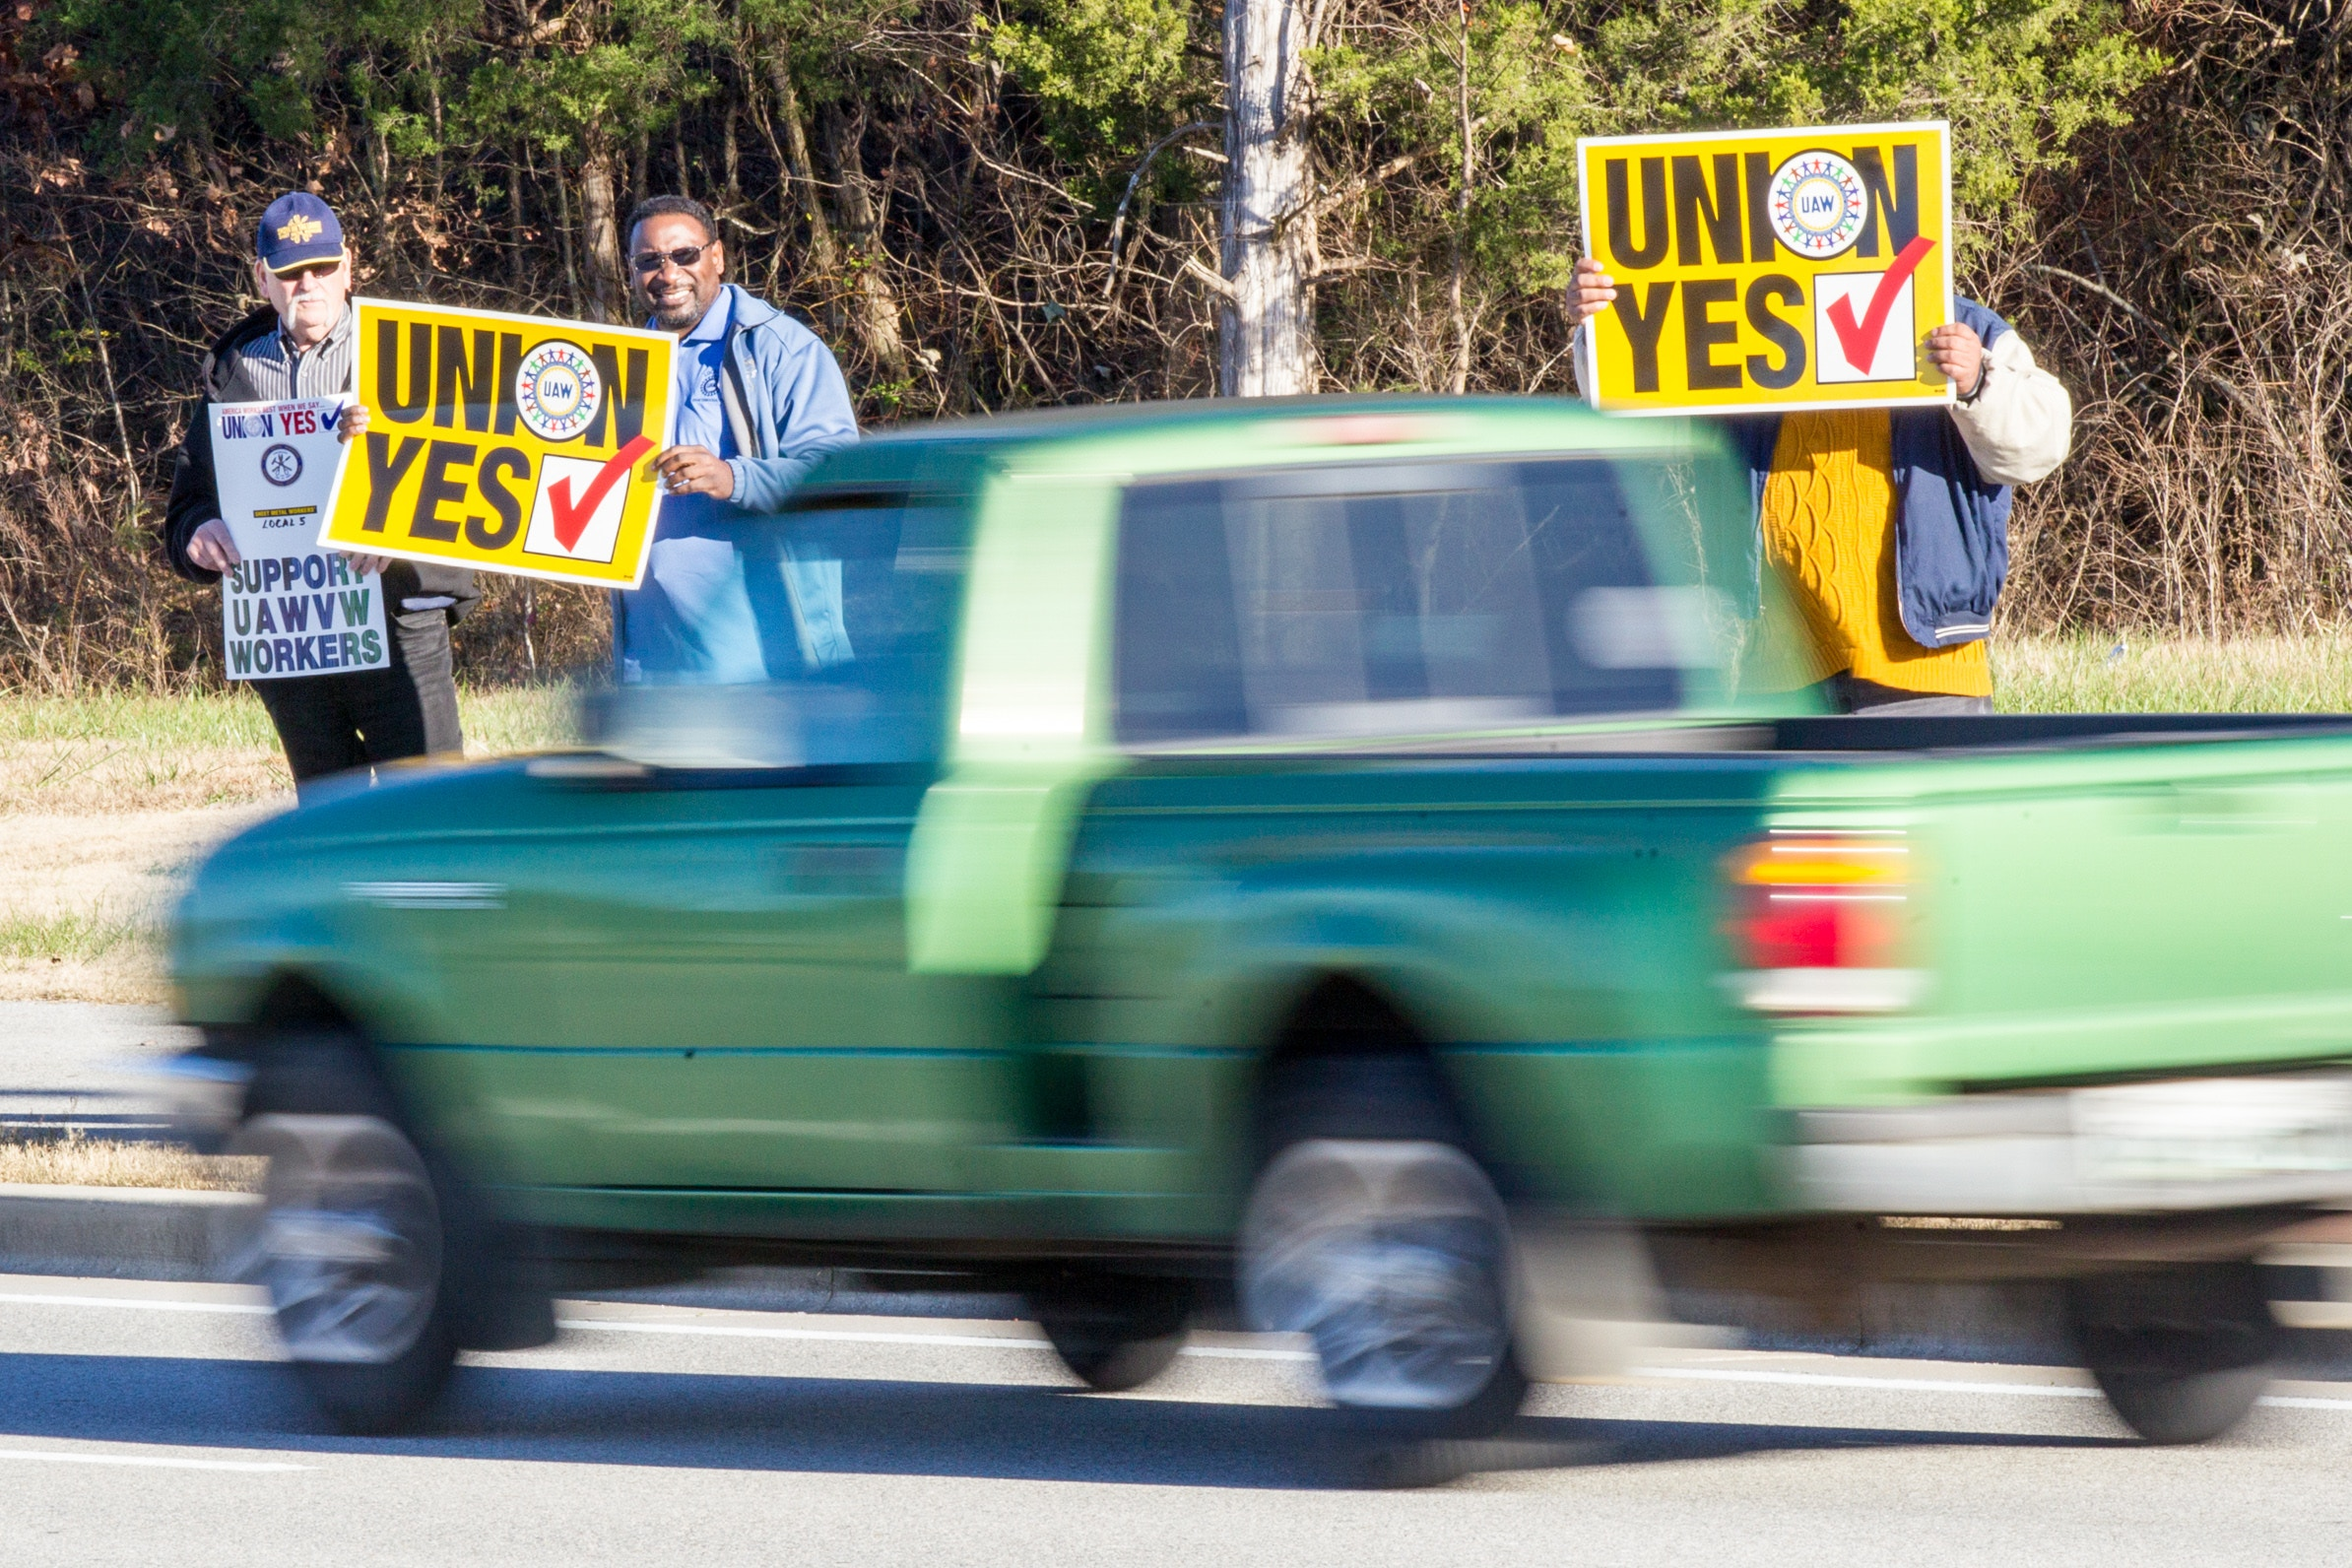 FILE - In this Dec. 4, 2015 file photo, union supporters hold up signs near the Volkswagen plant in Chattanooga, Tenn. Volkswagen announced on Monday, April 25, 2016, that it plans to appeal a National Labor Relations Board decision upholding a union vote by skilled-trades workers at the plant. (AP Photo/Erik Schelzig, file)